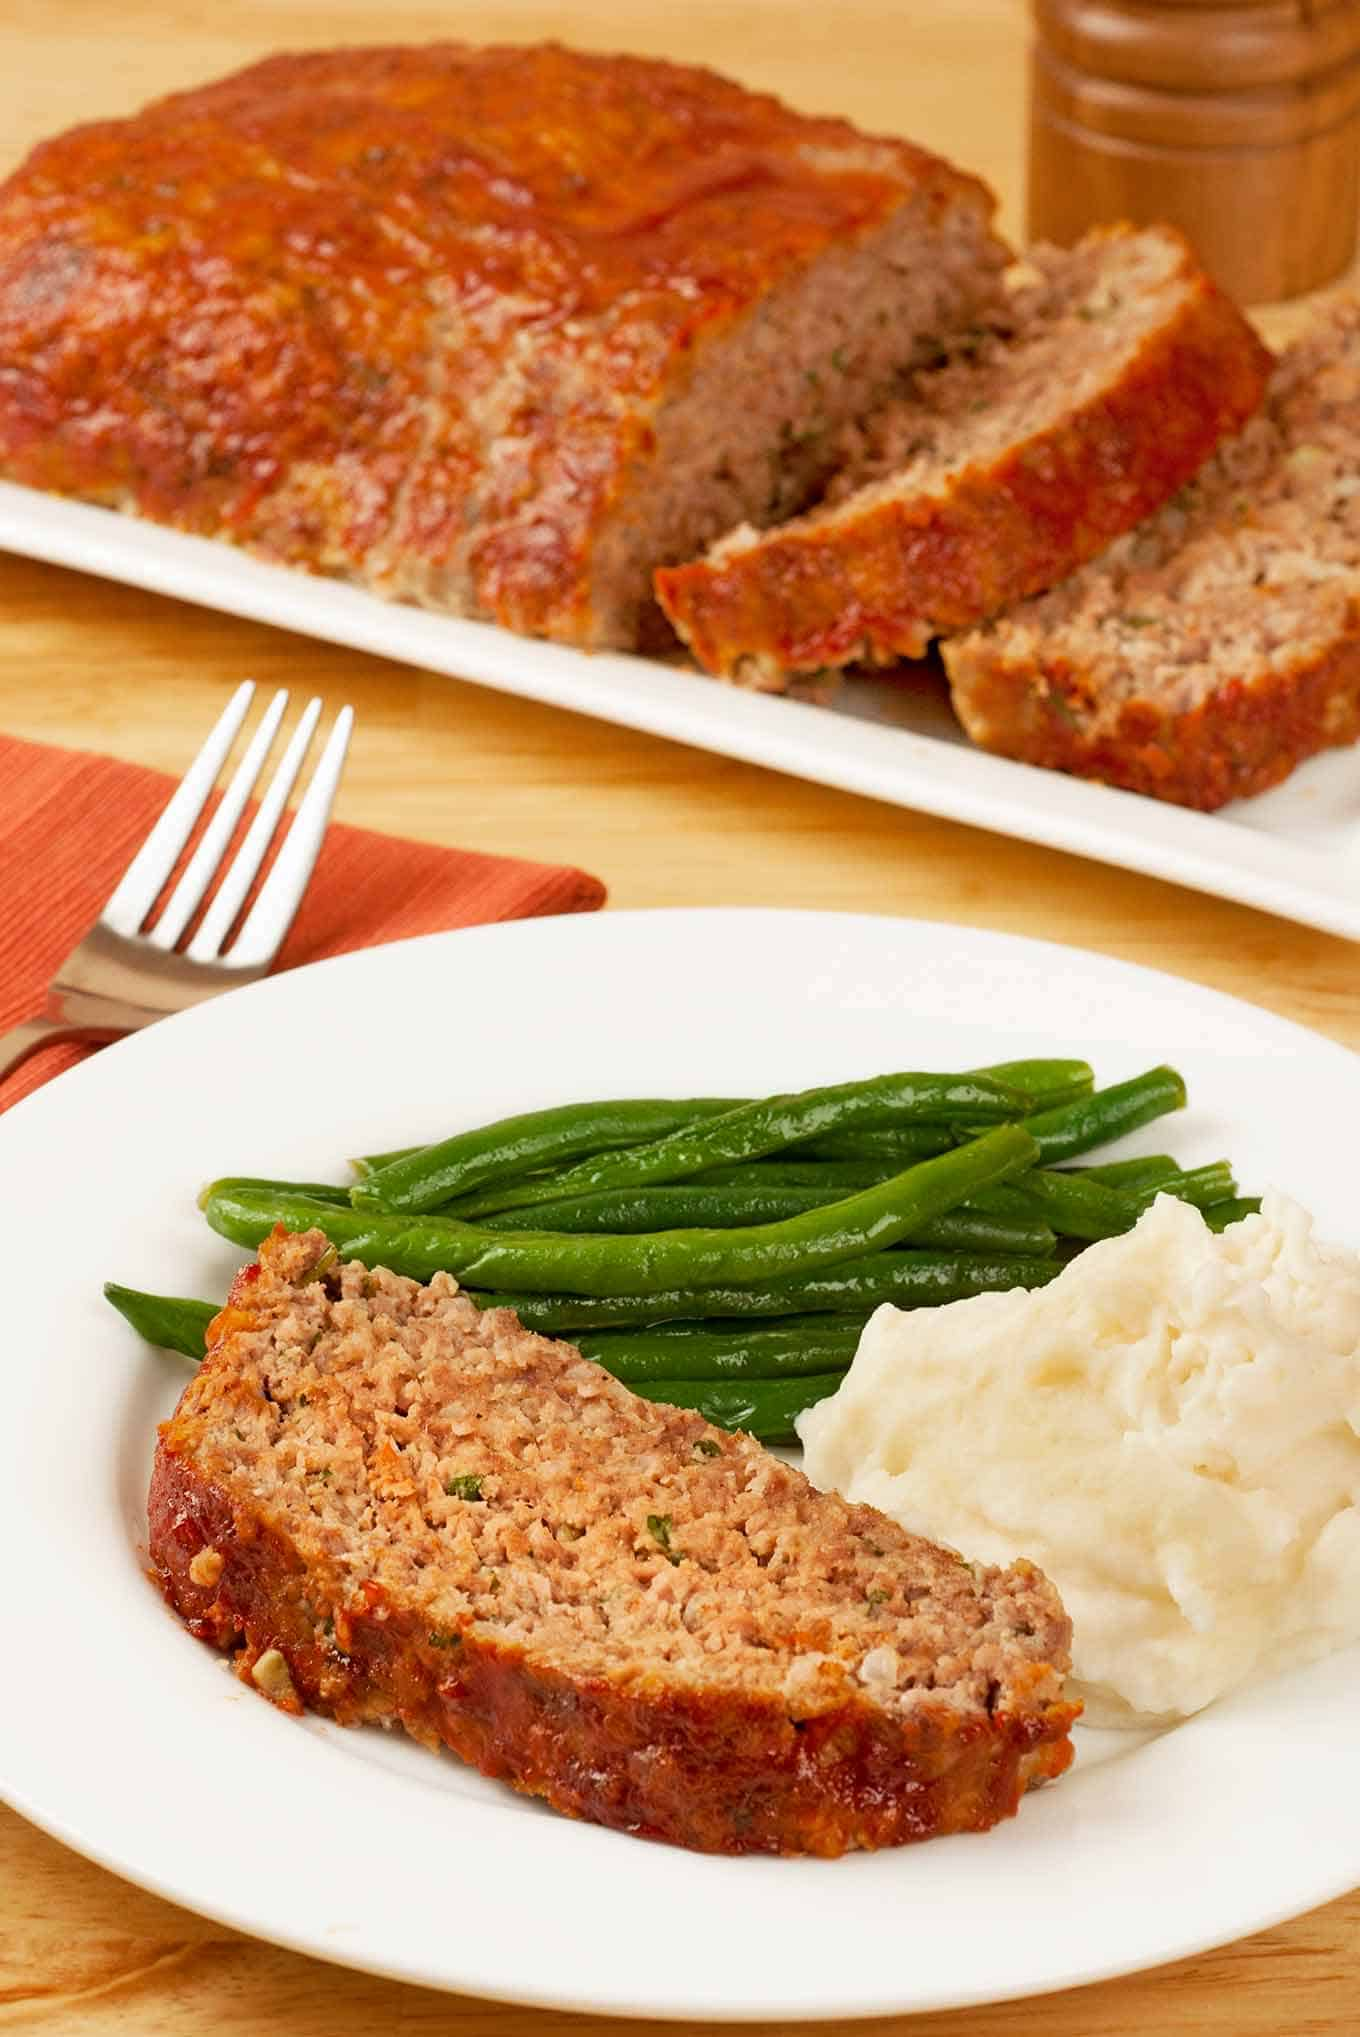 Slice of meatloaf on a plate with mashed potatoes and green beans and serving platter of meatloaf in the background.